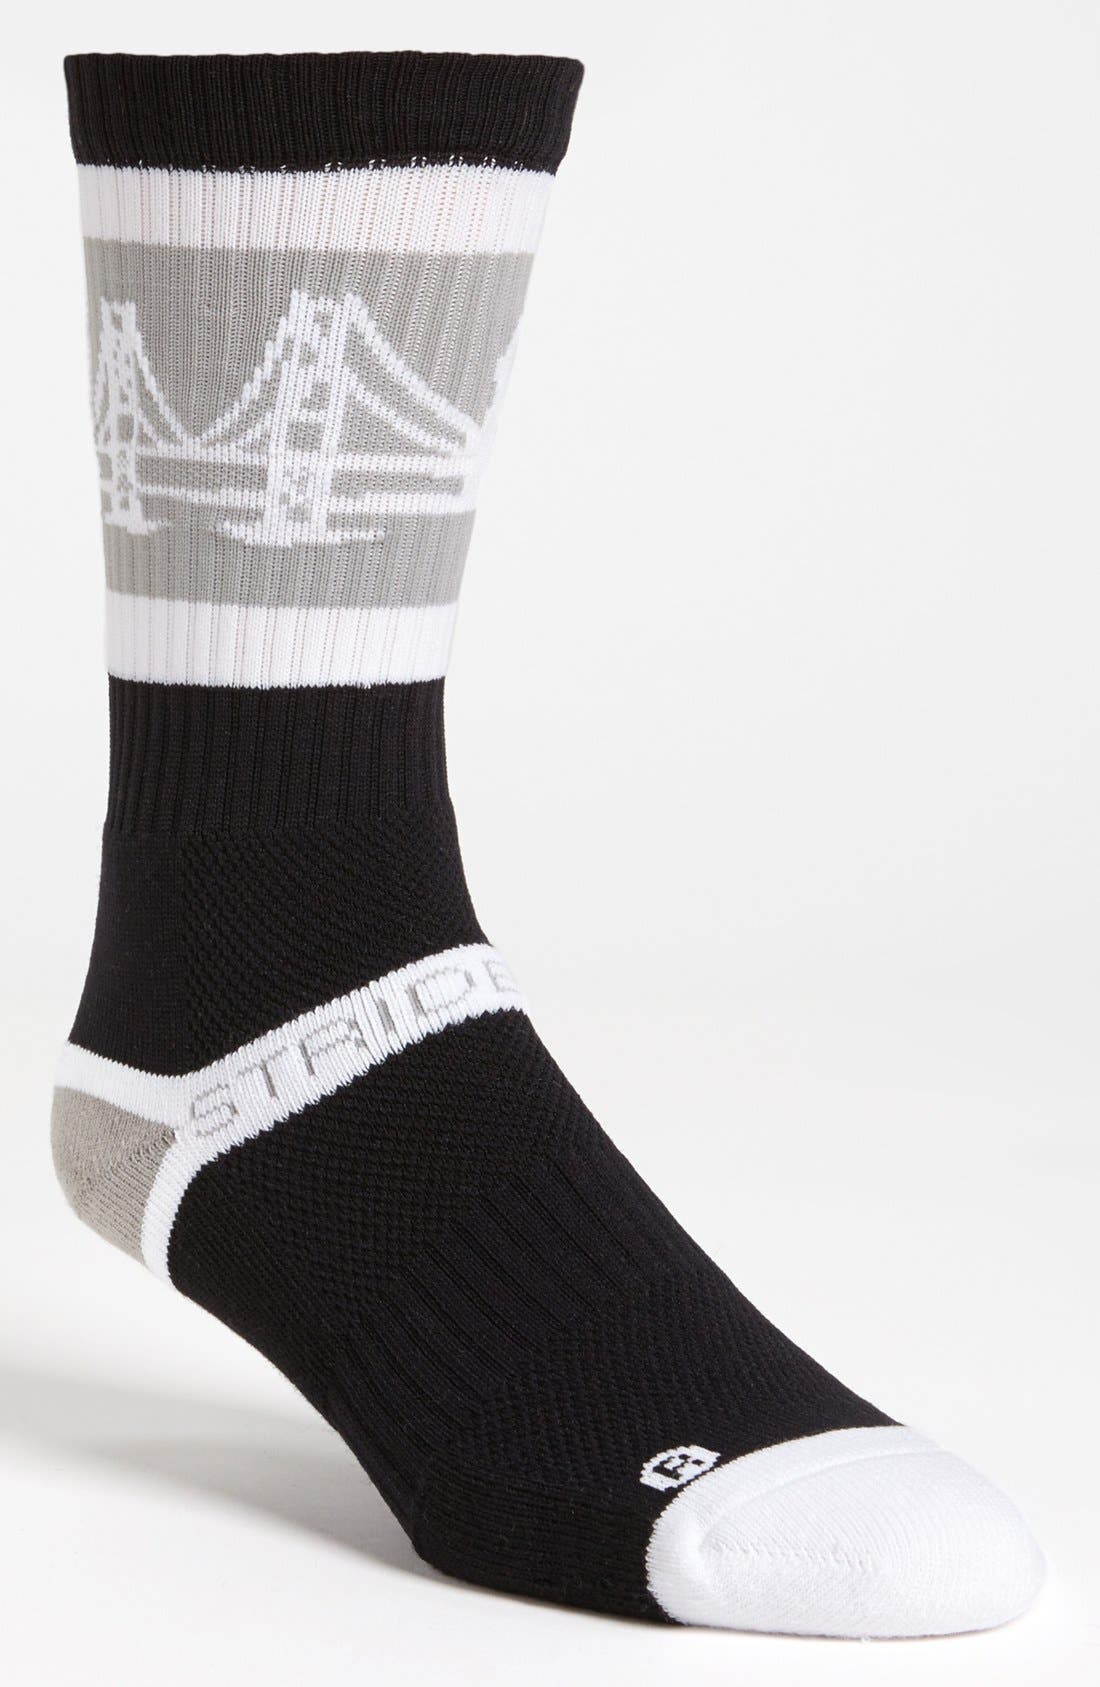 Alternate Image 1 Selected - STRIDELINE 'The Bay' Socks